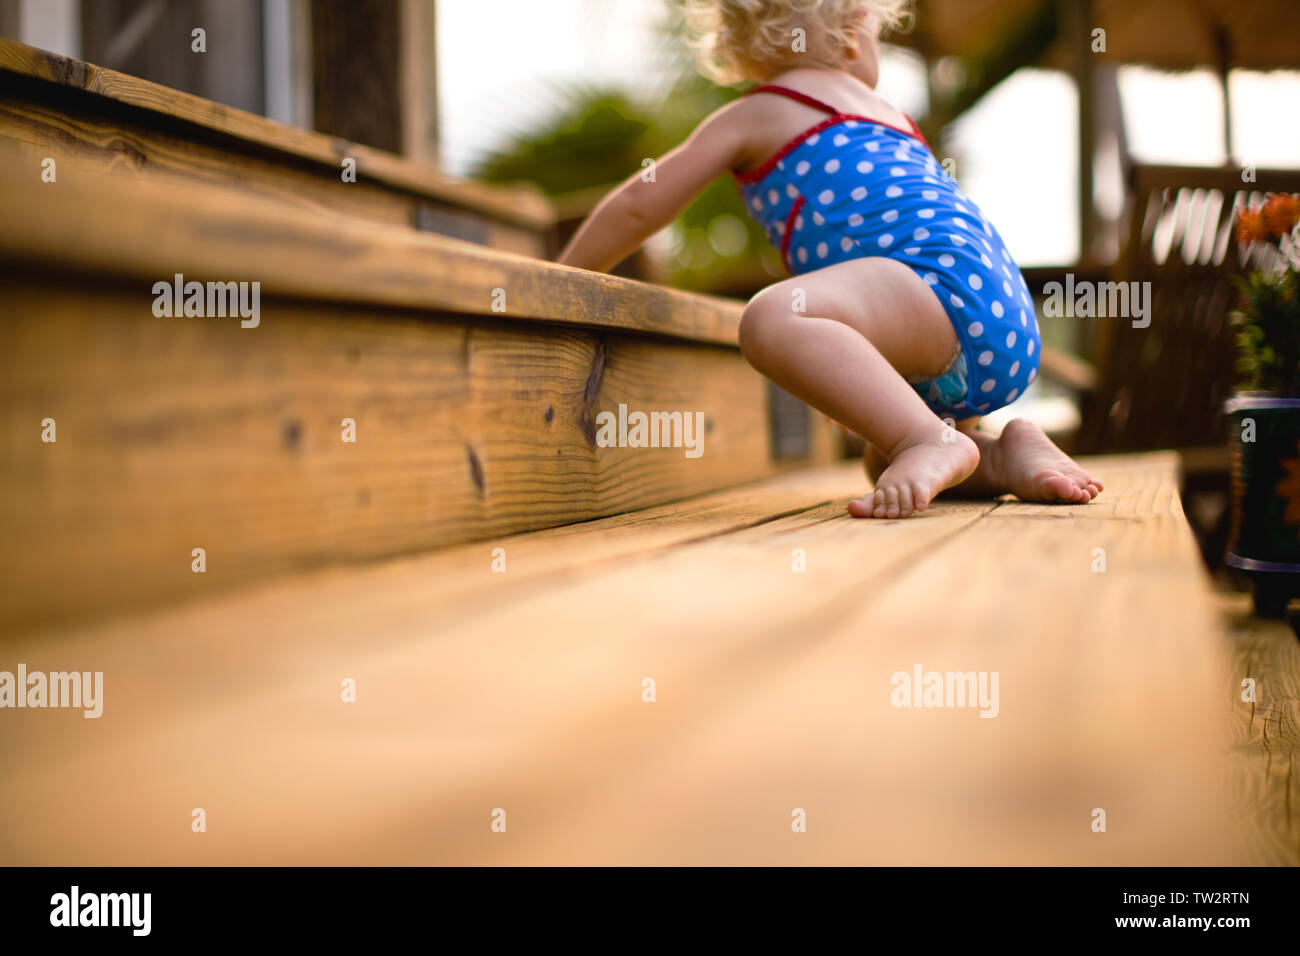 Baby crawling on wooden steps. - Stock Image